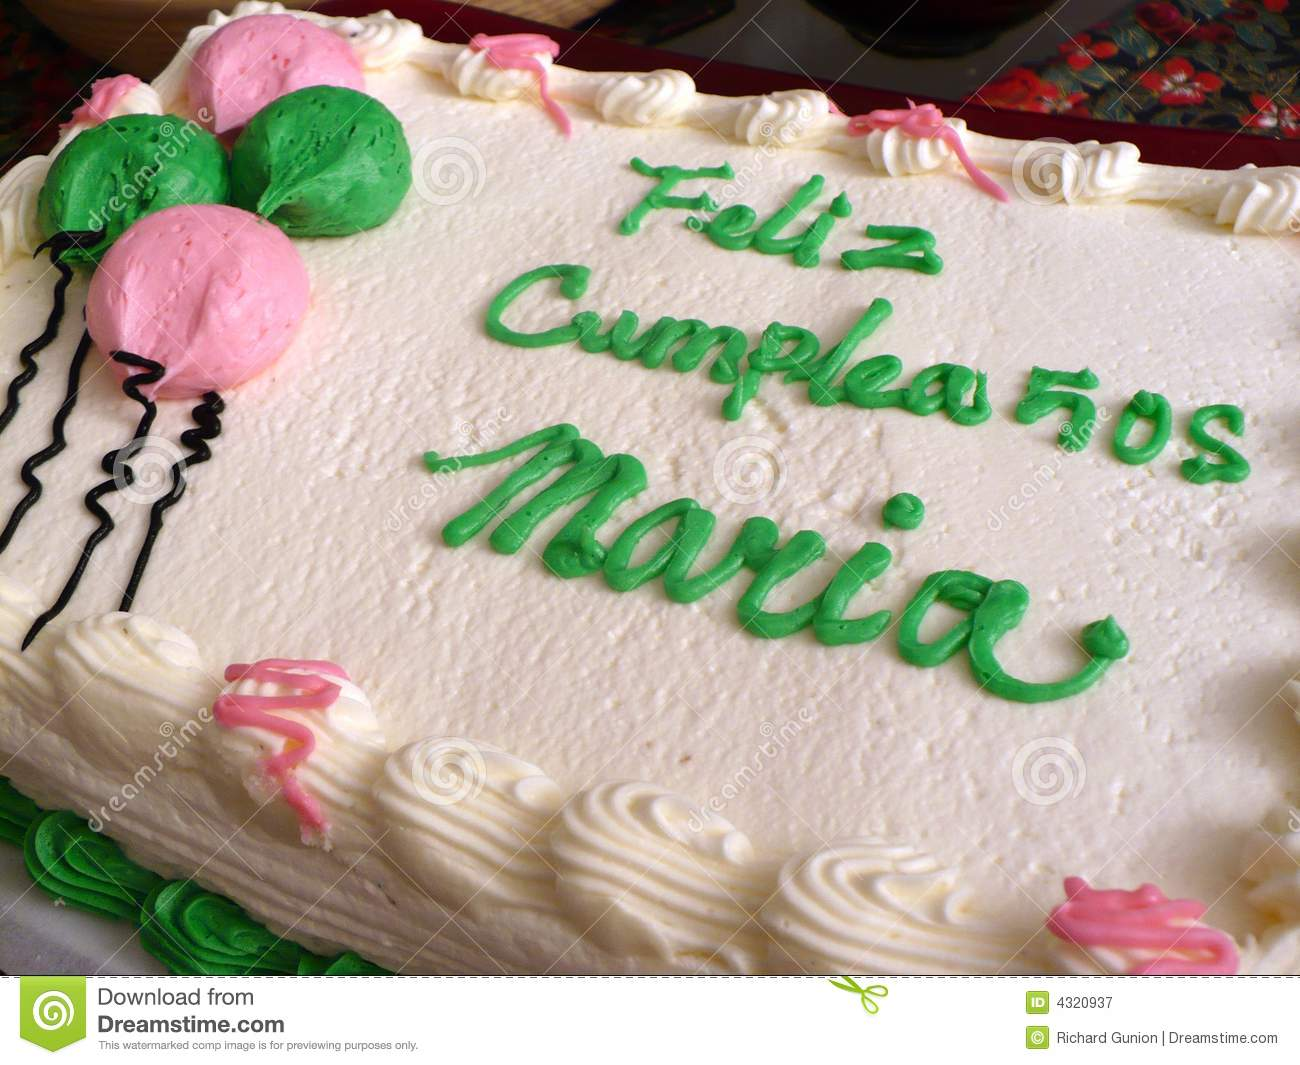 Photo Of Birthday Cake Which Says Happy Maria In Spanish Feliz Cumpleanos Means And Is The Common Name A Latina Or